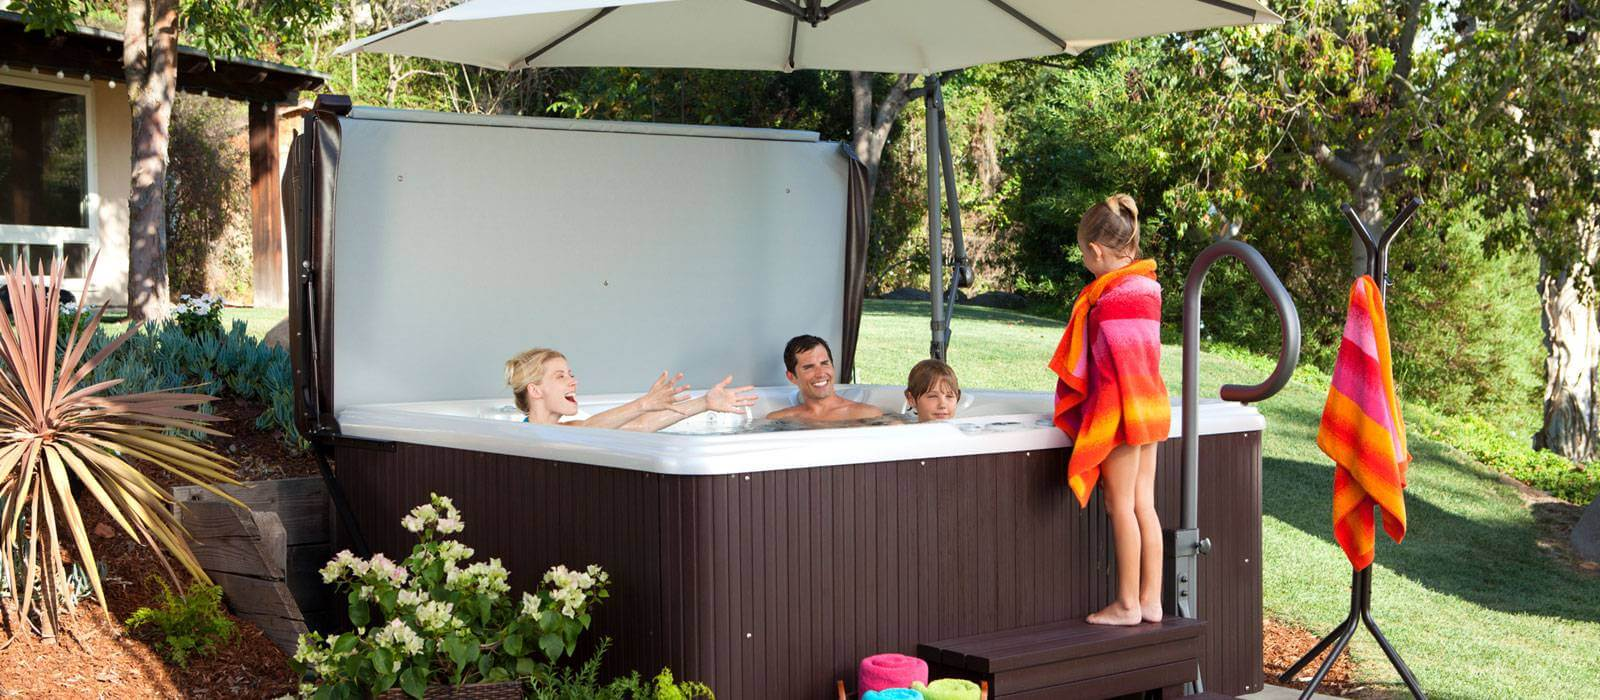 Backyard Hot Tub Ideas turn your ordinary hot tub into a backyard garden retreat with the installation of an enclosed gazebo also known as a gazebo shed or hideaway retr Gallery Garden Spas Pool Free Standing Hot Tub